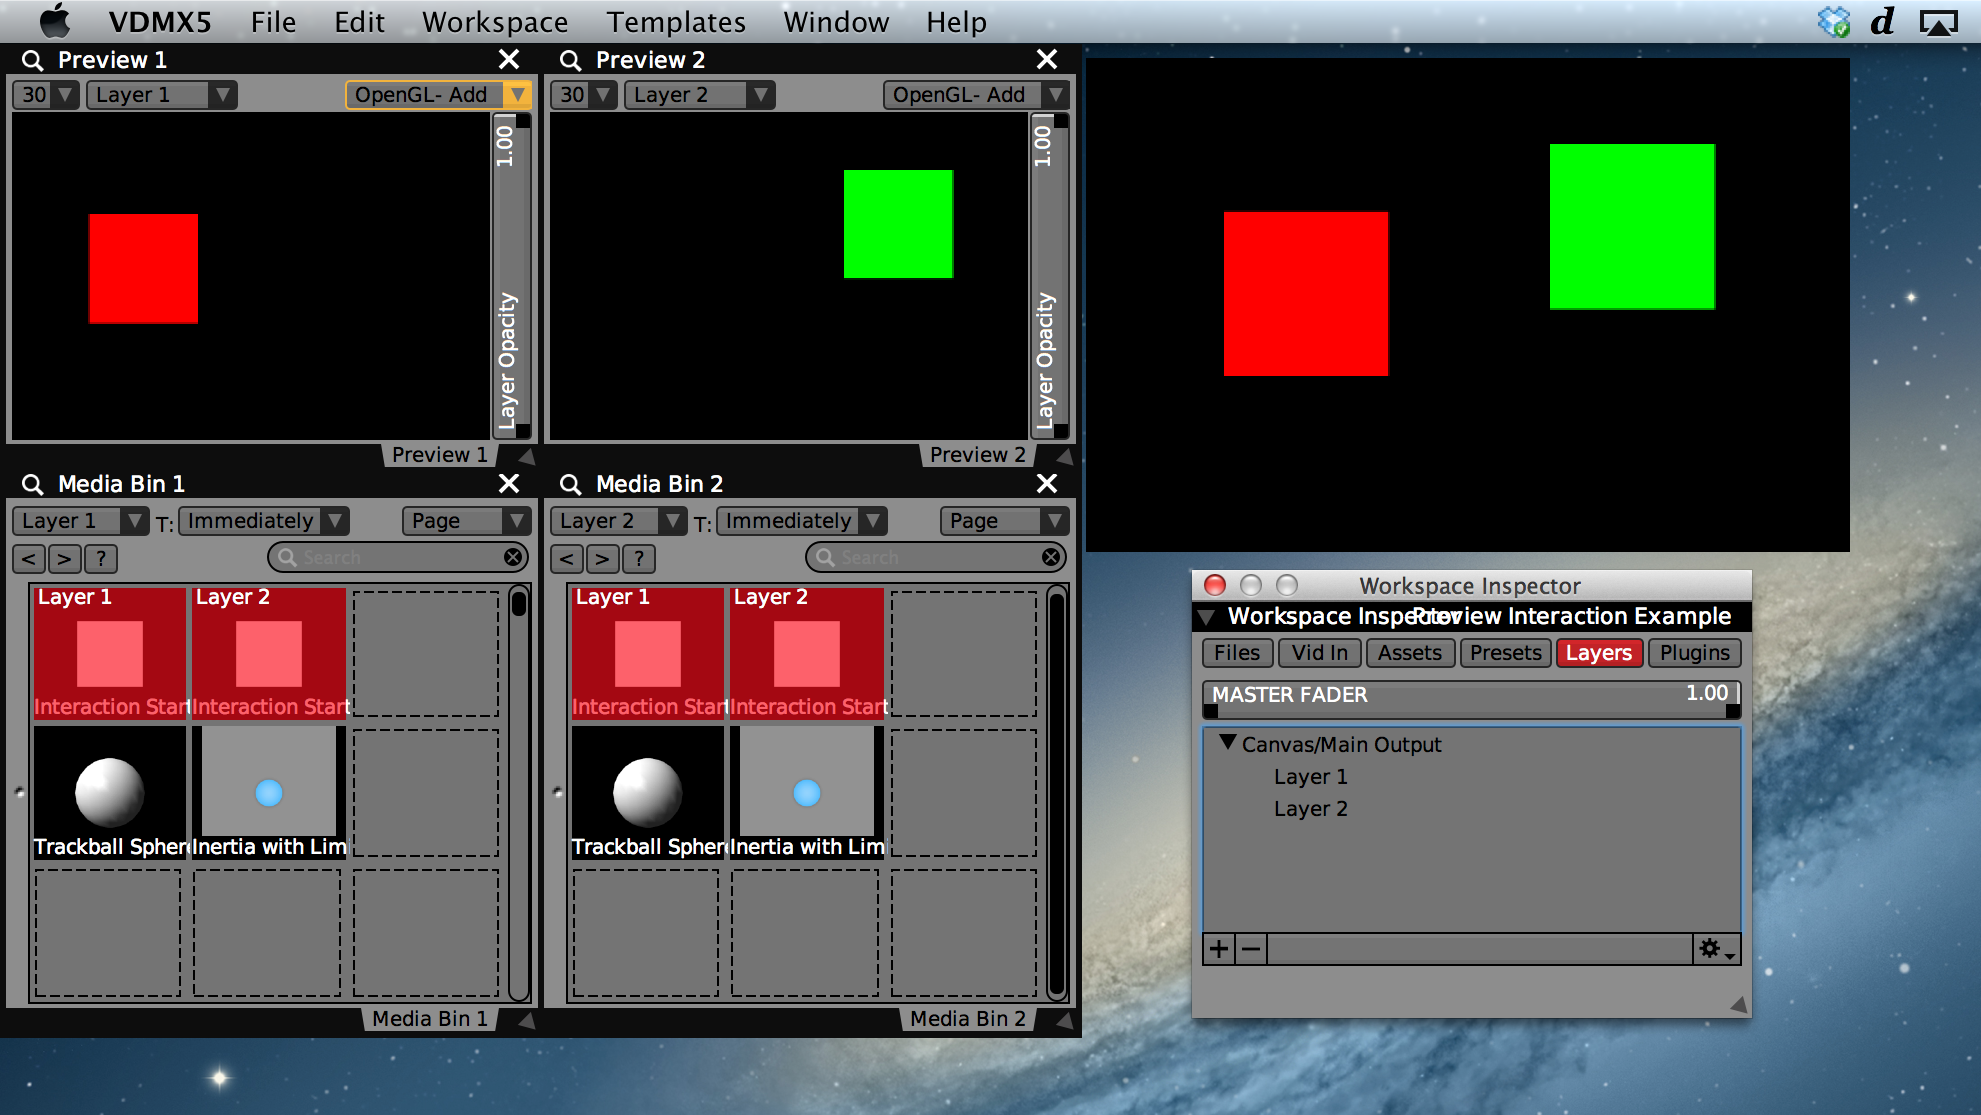 Two layer setup with click-and-drag previews in VDMX.